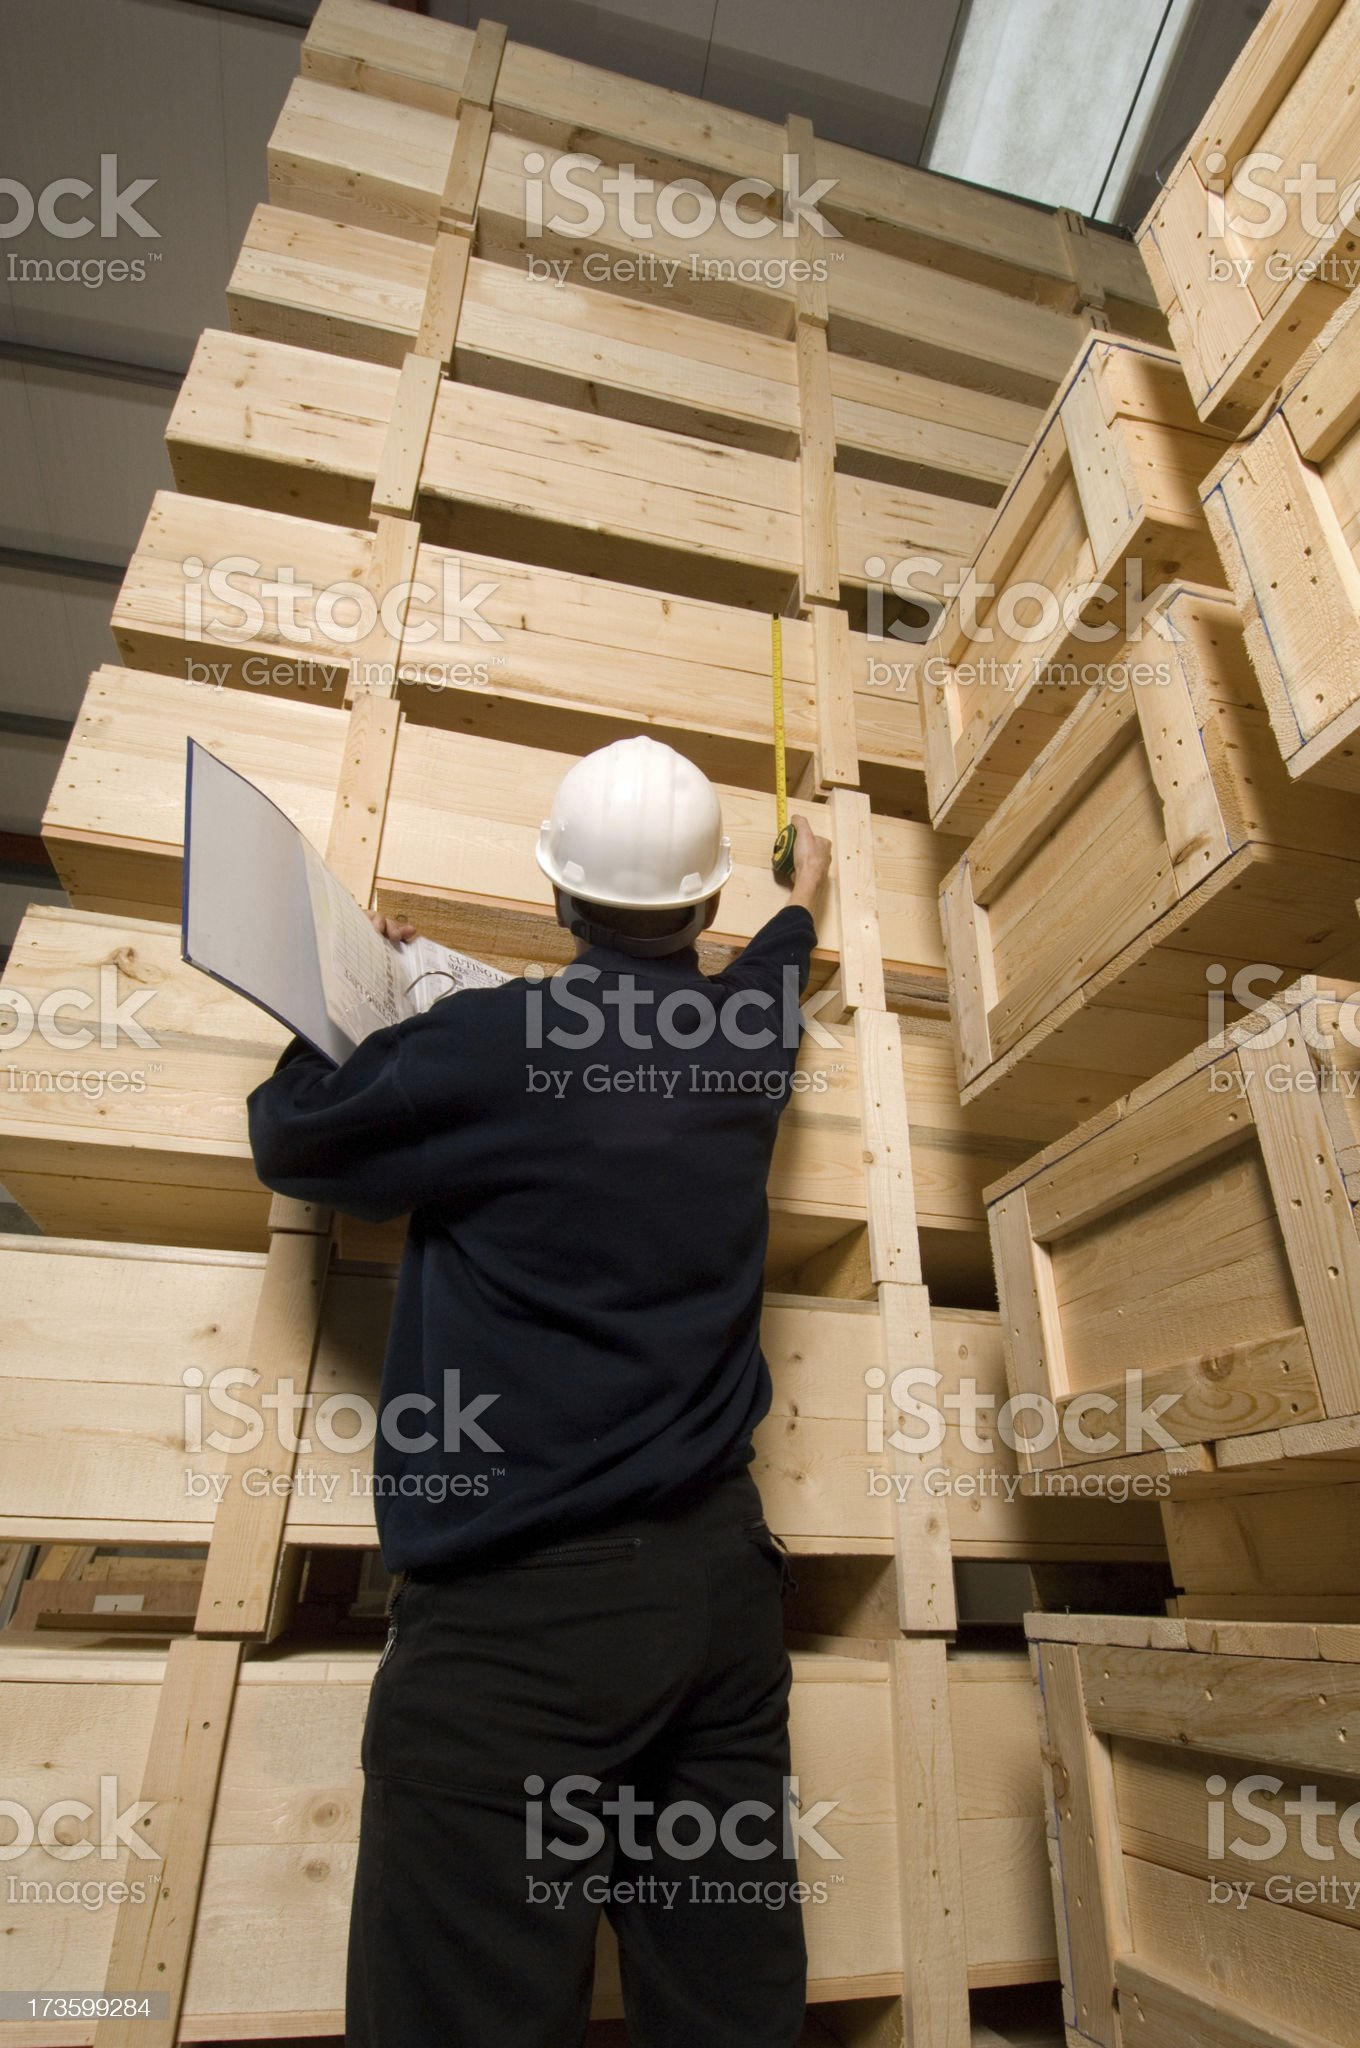 measuring export costs royalty-free stock photo